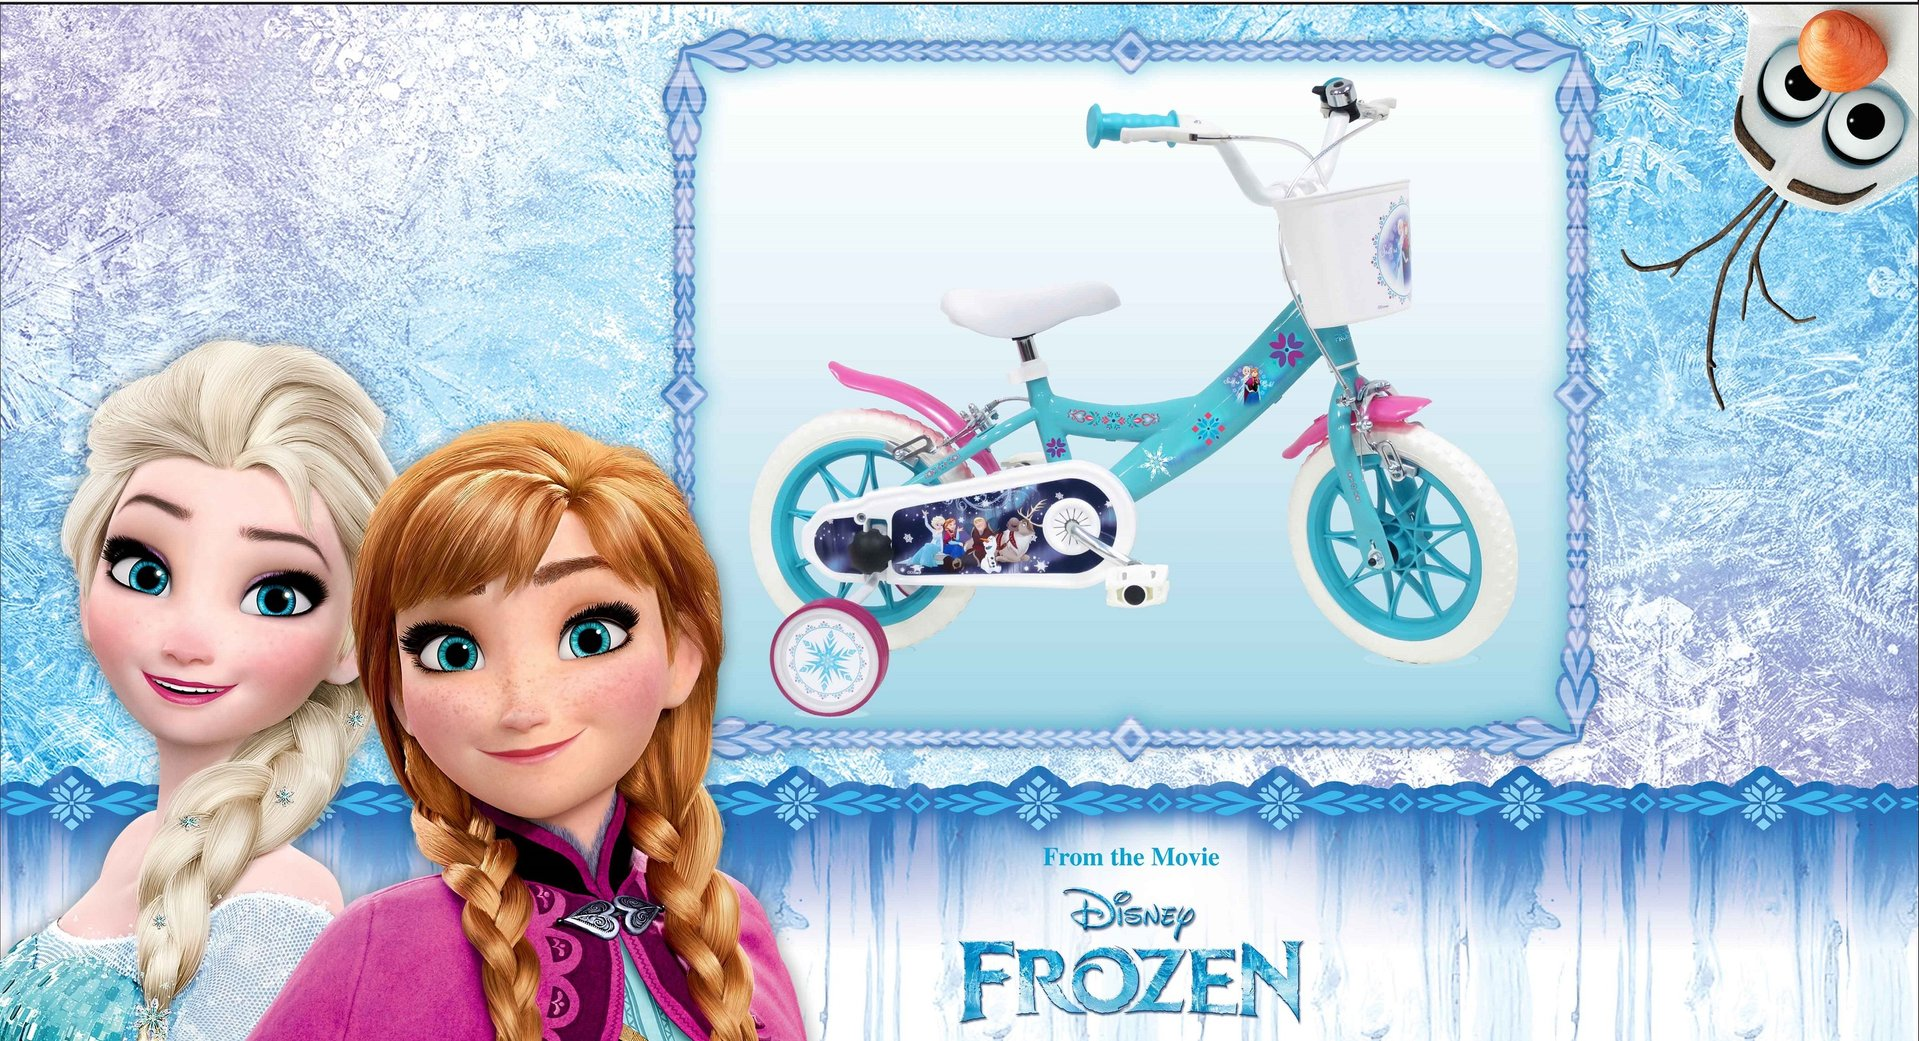 velo 12 disney reine des neiges frozen 2 - Disney La Reine Des Neiges